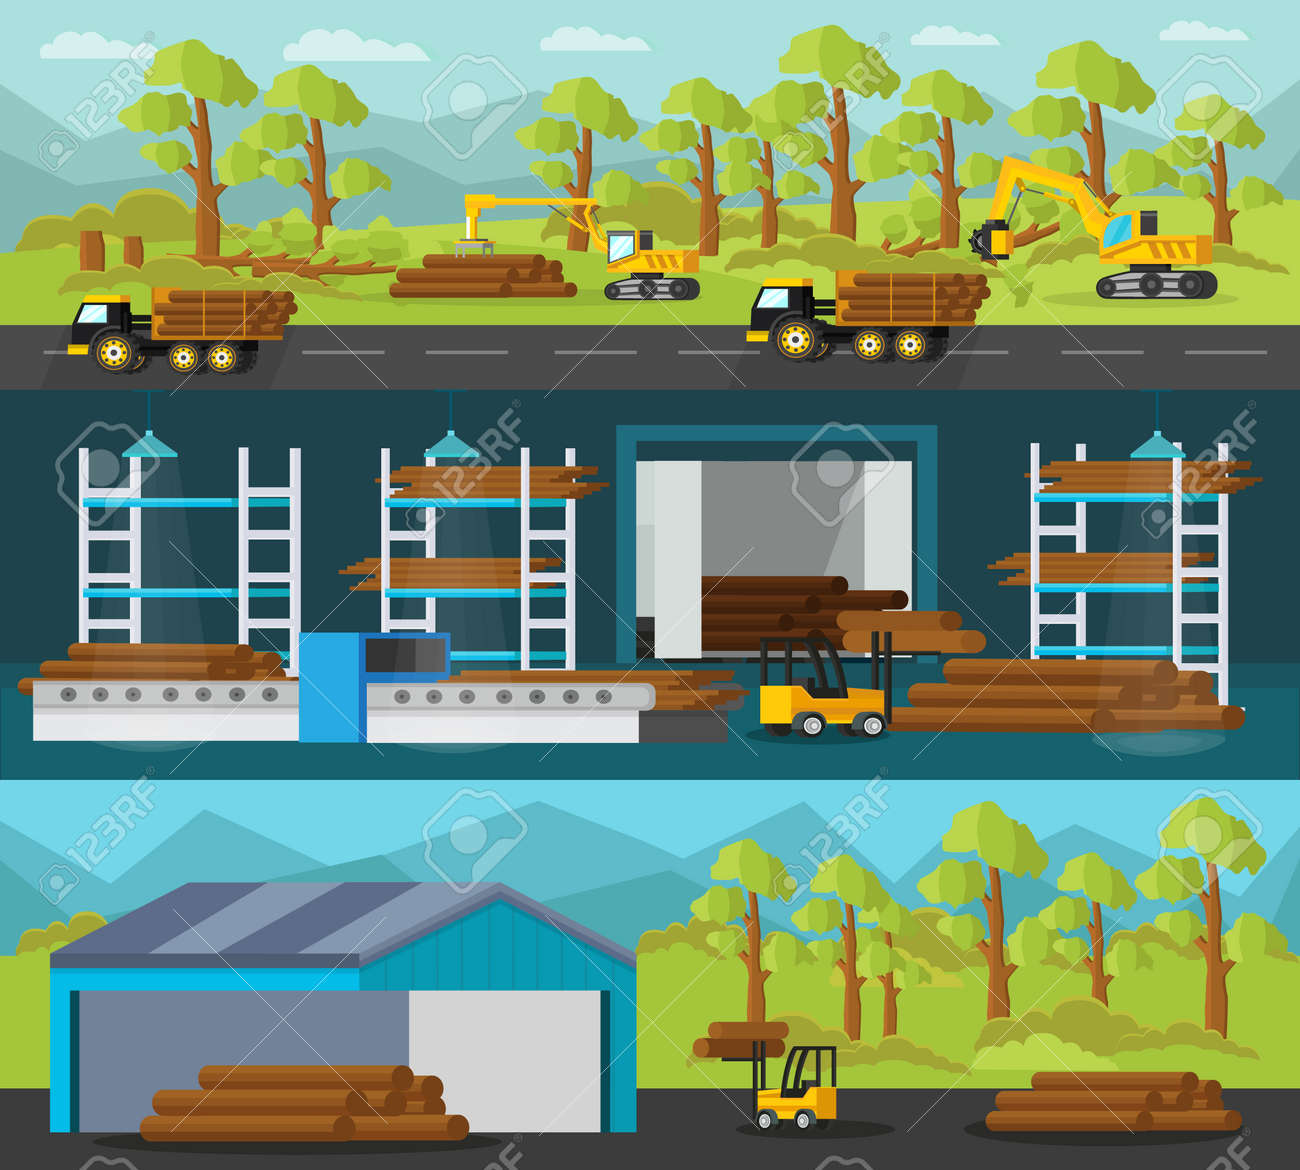 Timber production horizontal banners with industrial vehicles and processes of cutting loading transportation woodworking and logs storage vector illustration - 166511084